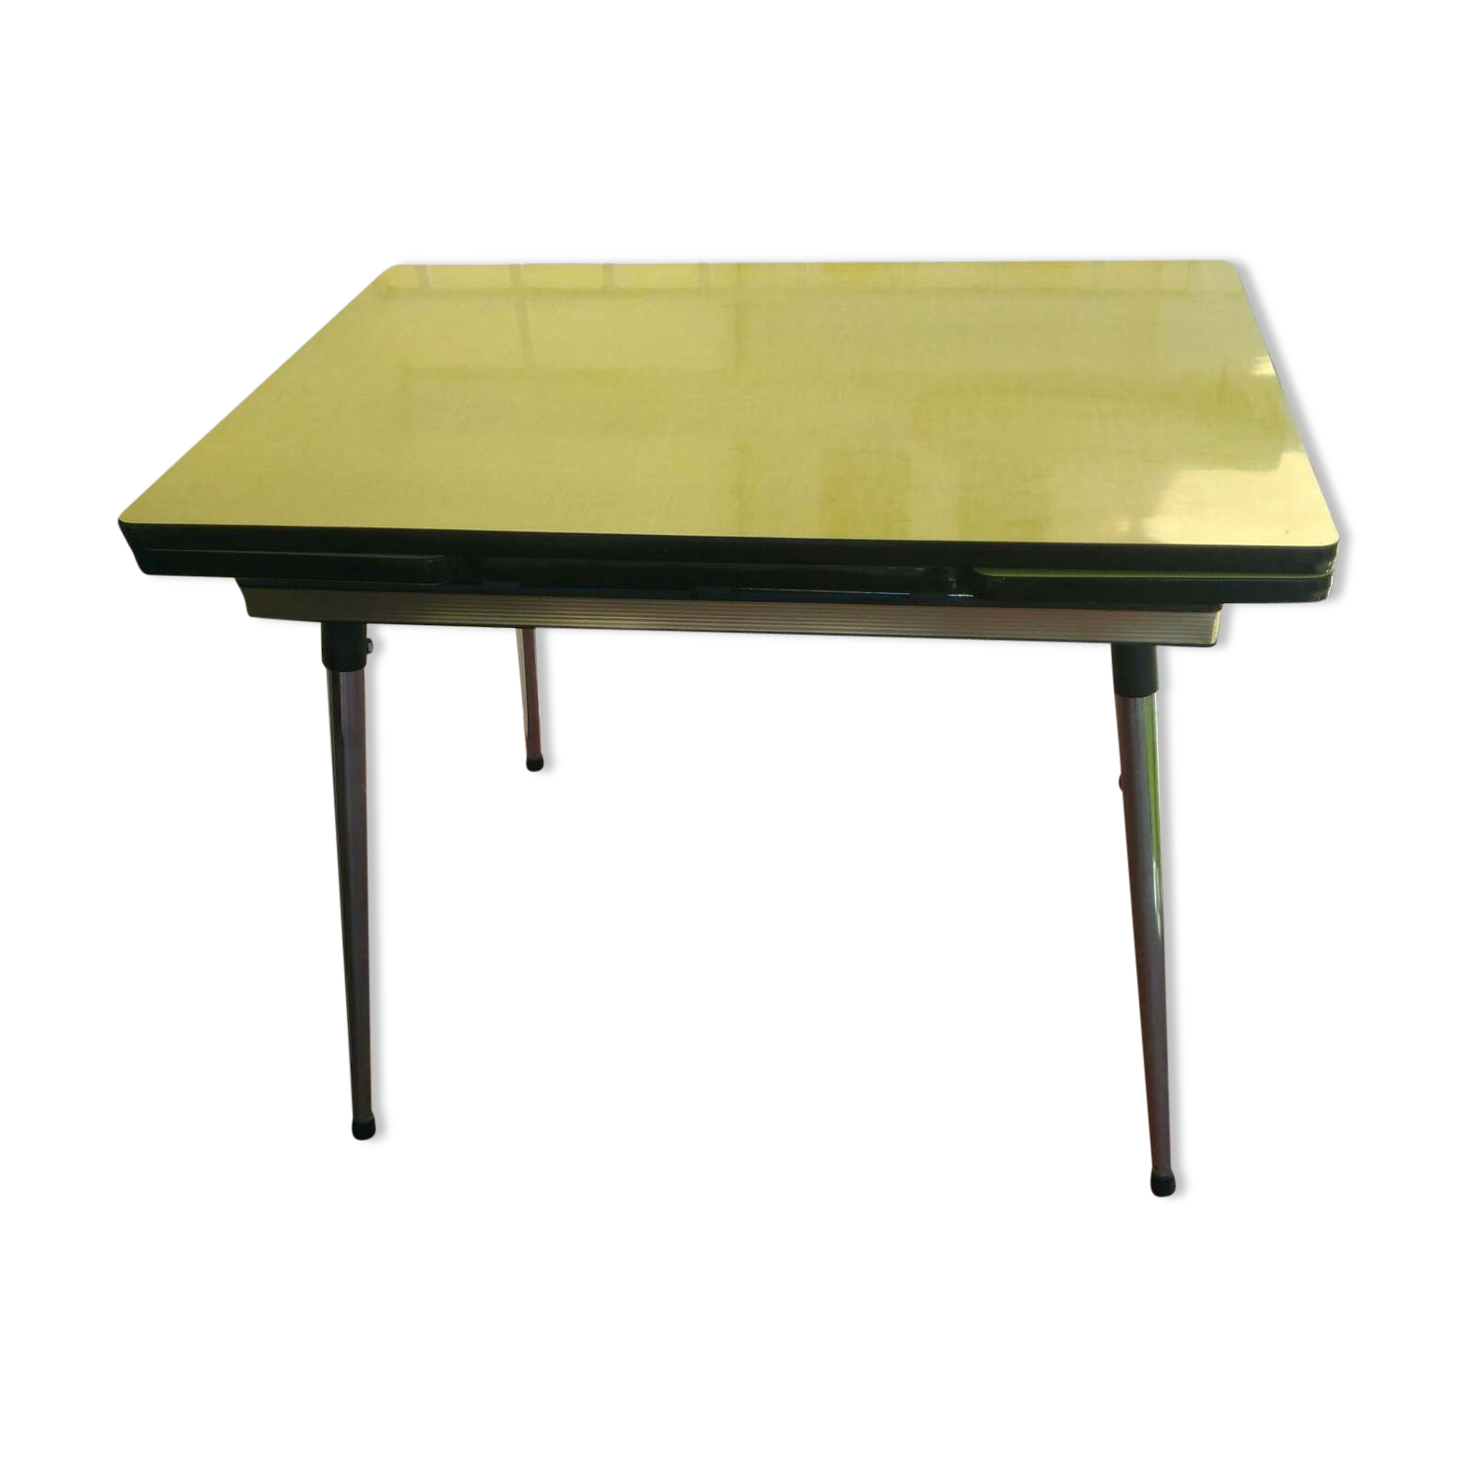 table de cuisine formica excellent with table de cuisine formica beautiful table formica jaune. Black Bedroom Furniture Sets. Home Design Ideas